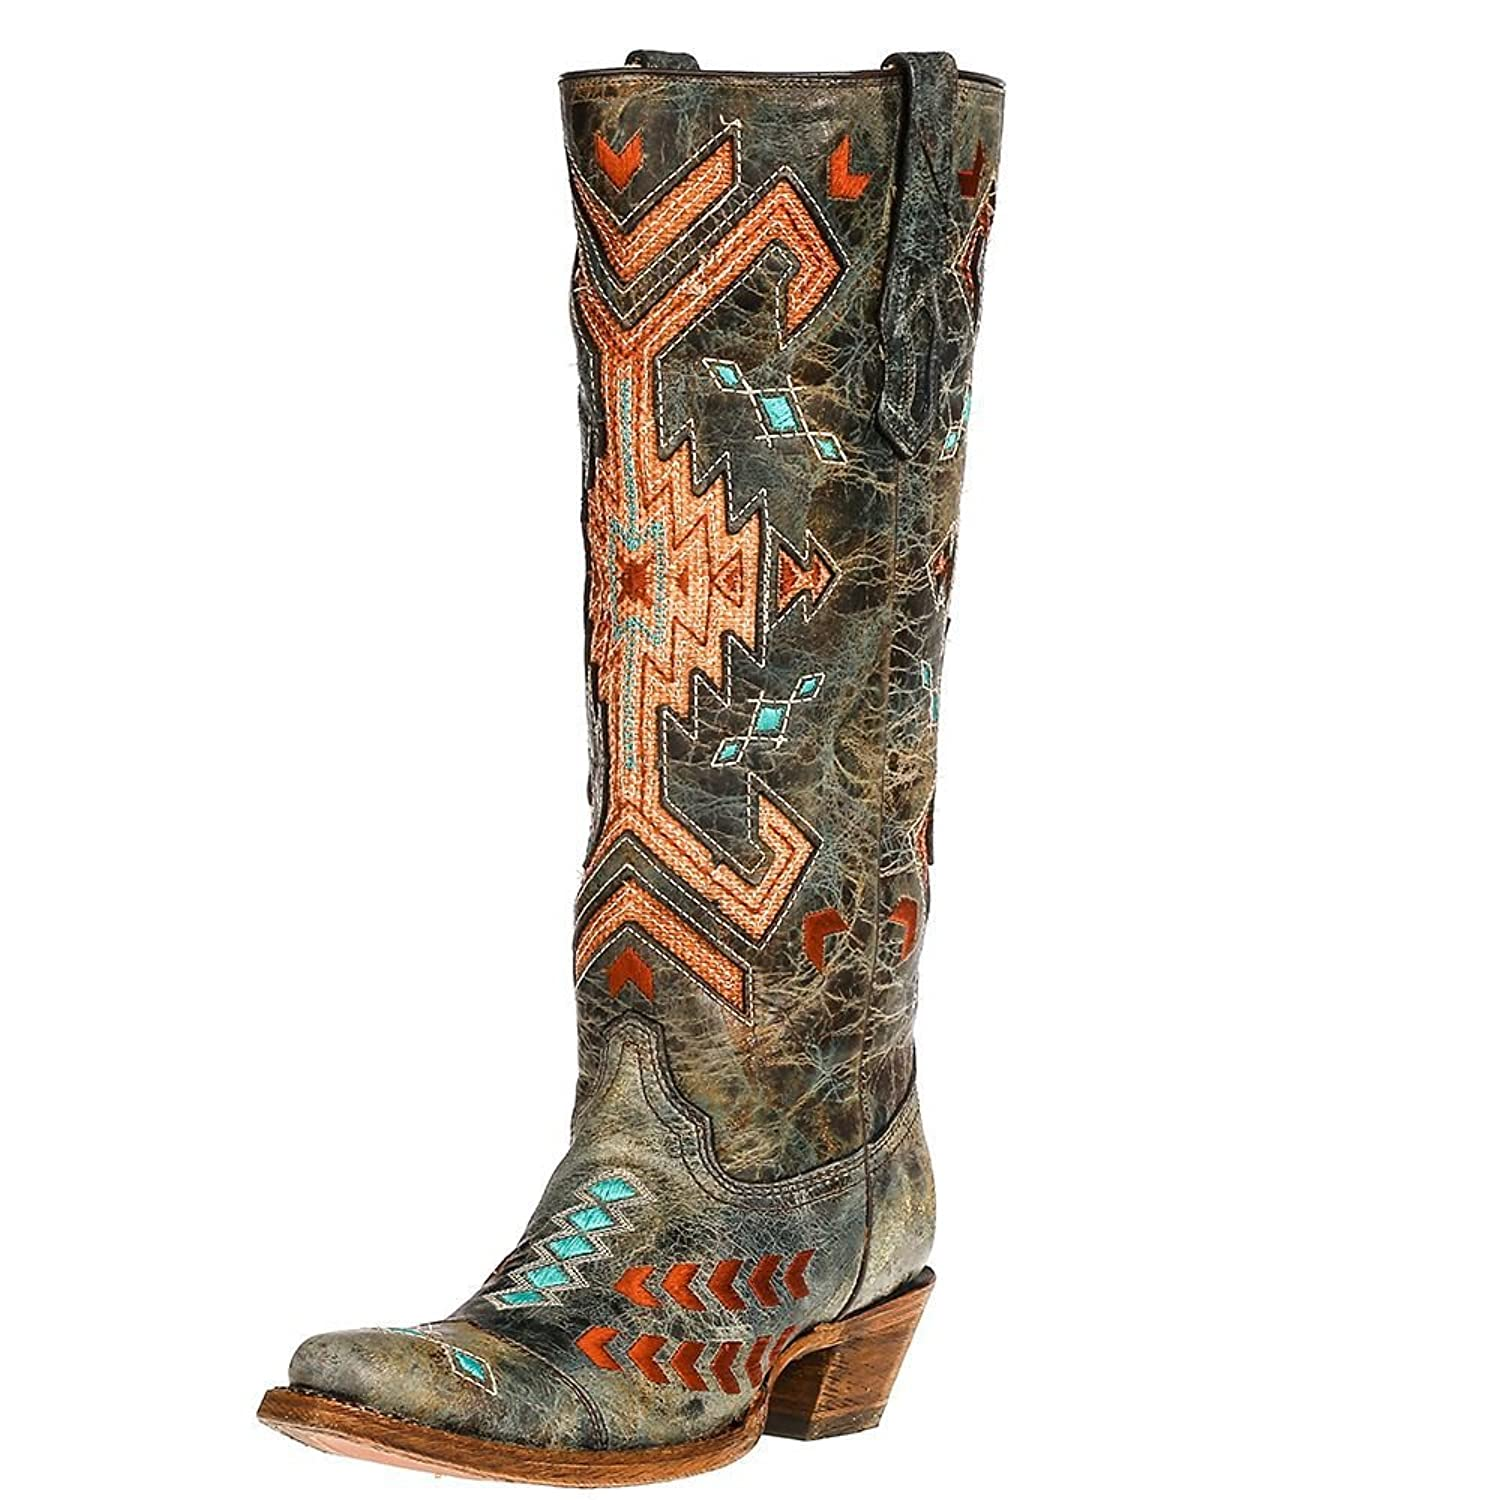 Corral Boot Company Womens Black Multi Color Jute Inlay 14 Top Turquoise